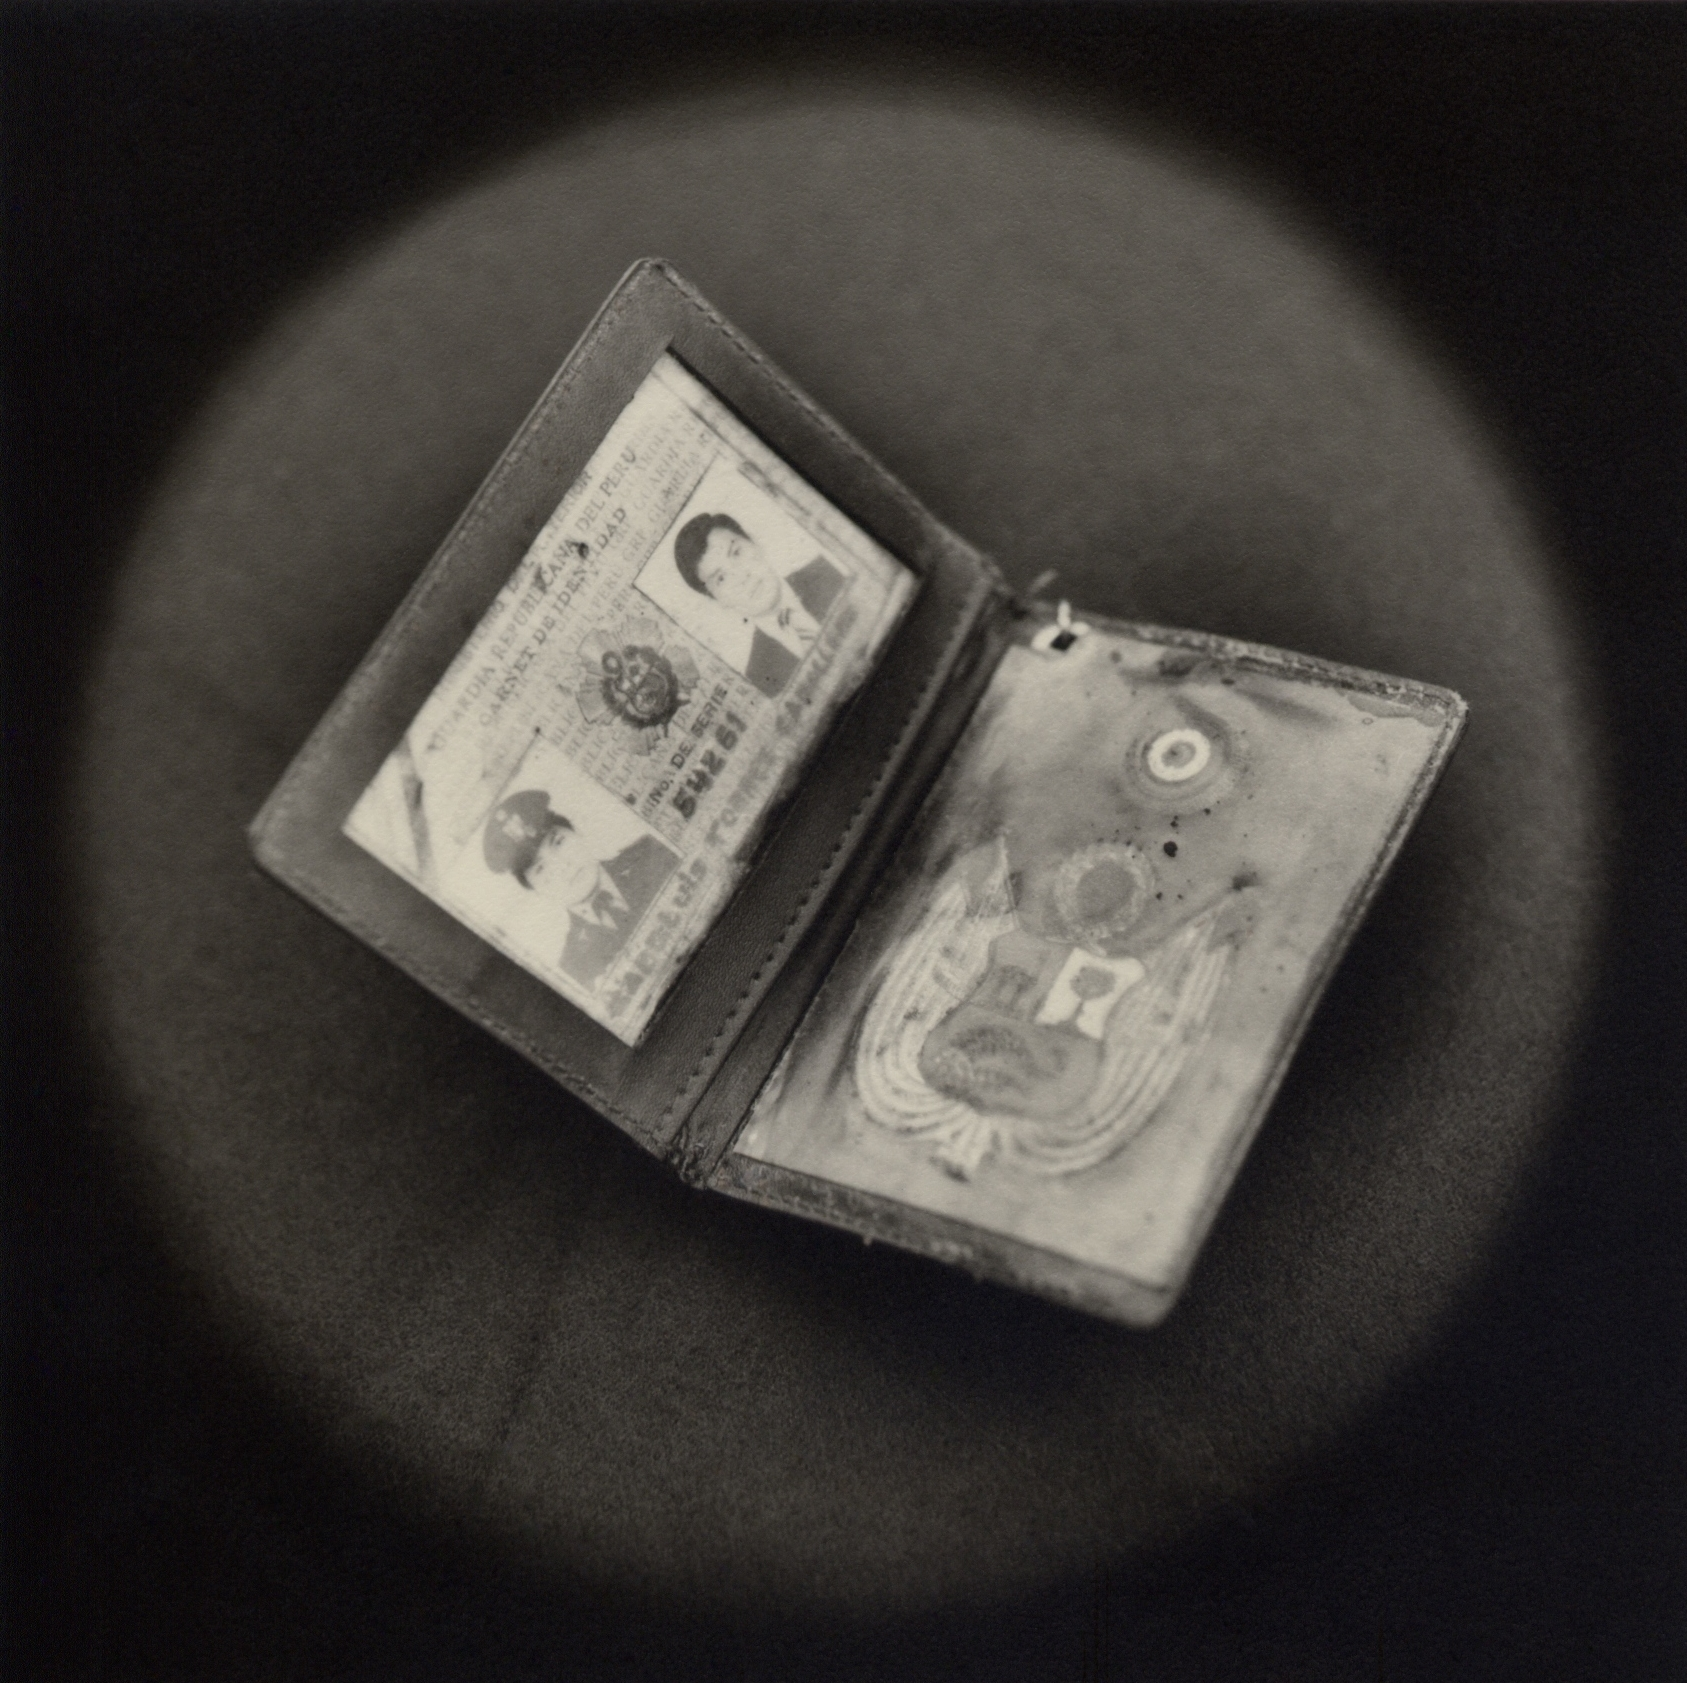 The Lost Steps (Fake police ID used by terrorist)  Toned gelatin silver print. 16 x 16 in.